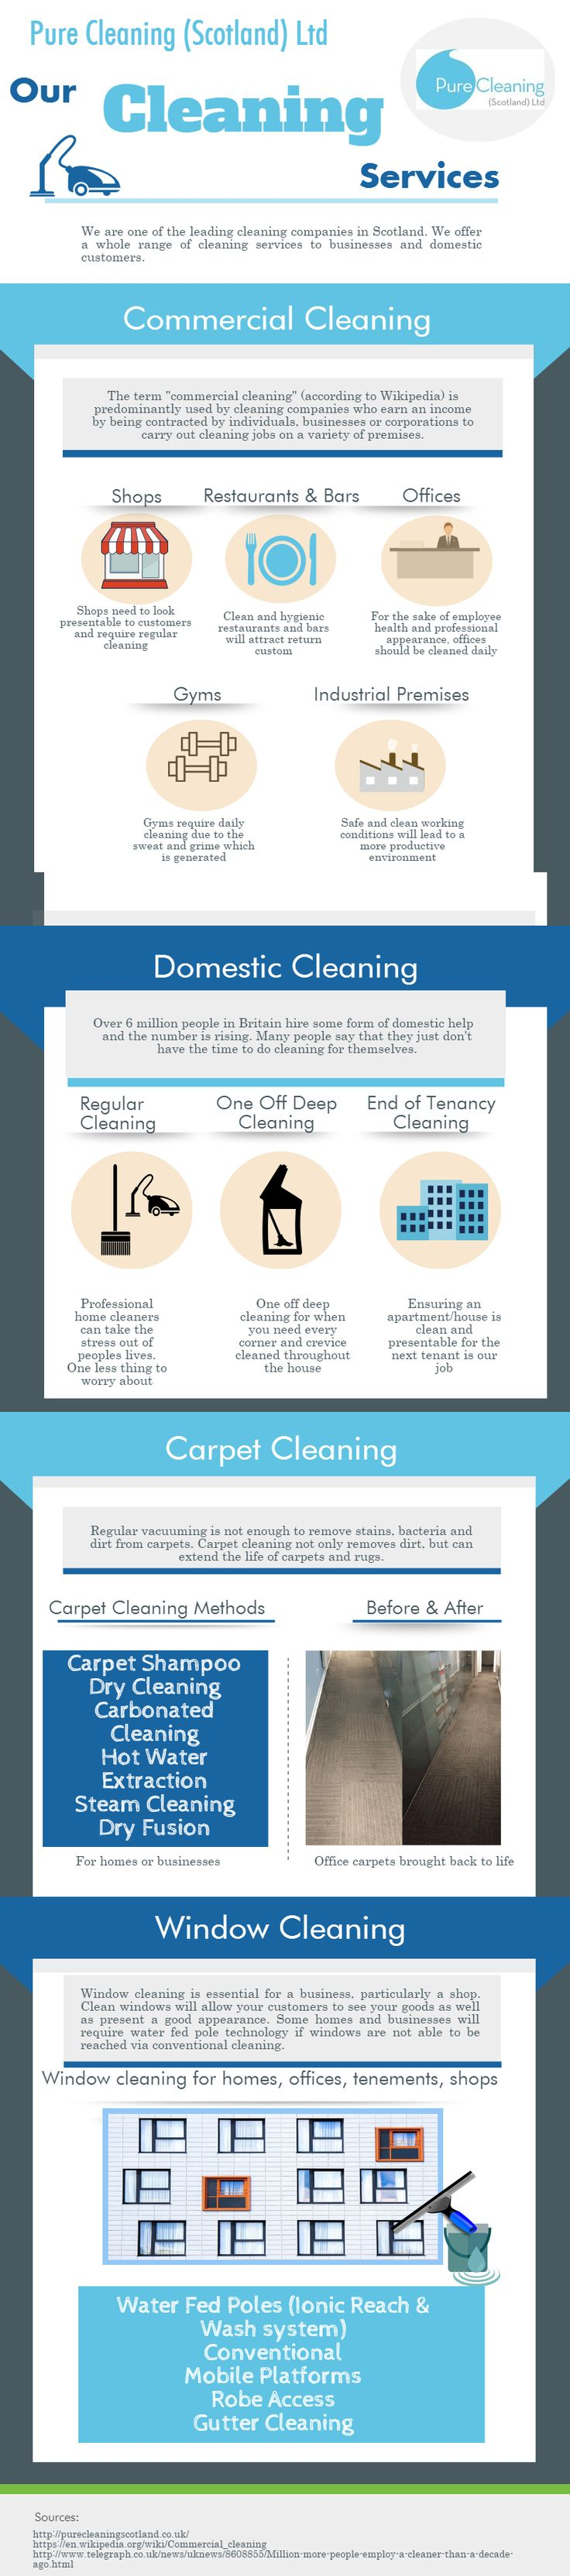 An infographic all about the cleaning services we offer.